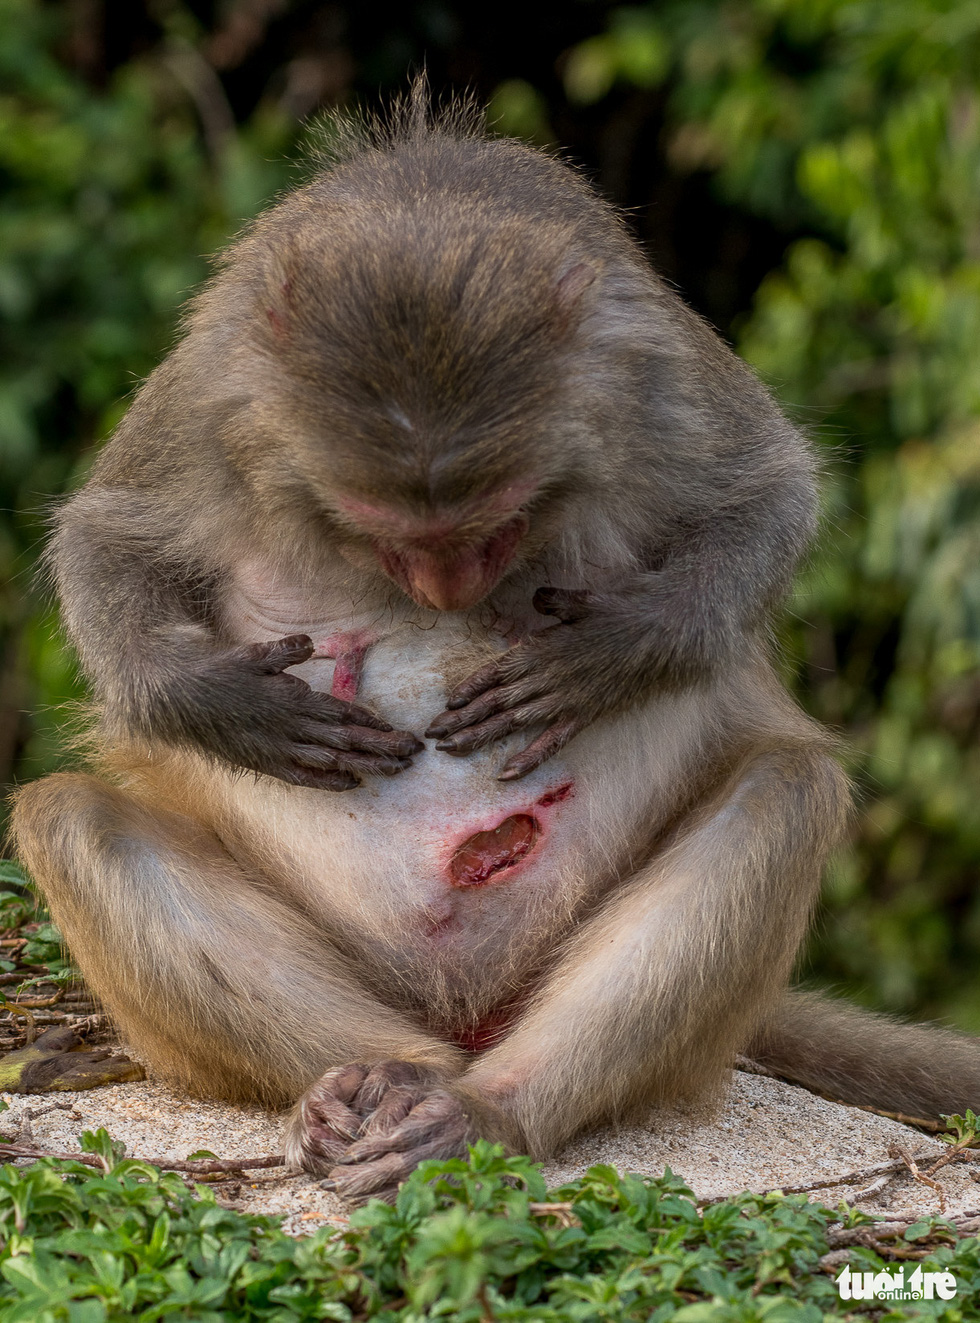 A monkey looks at the wound on his belly.